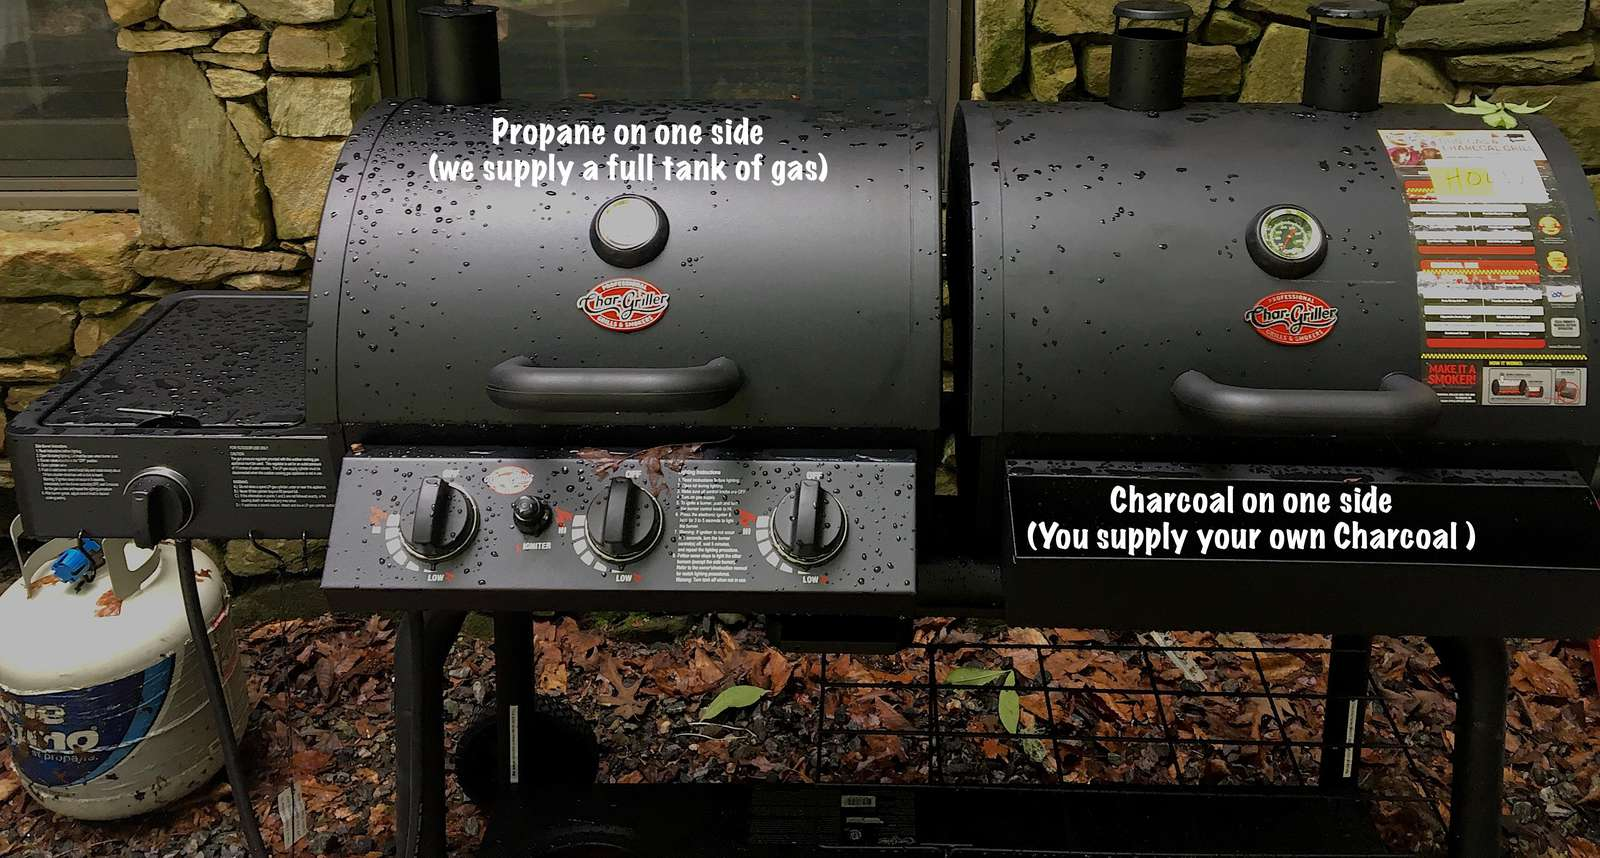 Dual Grill offers choice of Charcoal (Guests provide their own charcoal), or Gas cooking (we provide a full tank of propane)!